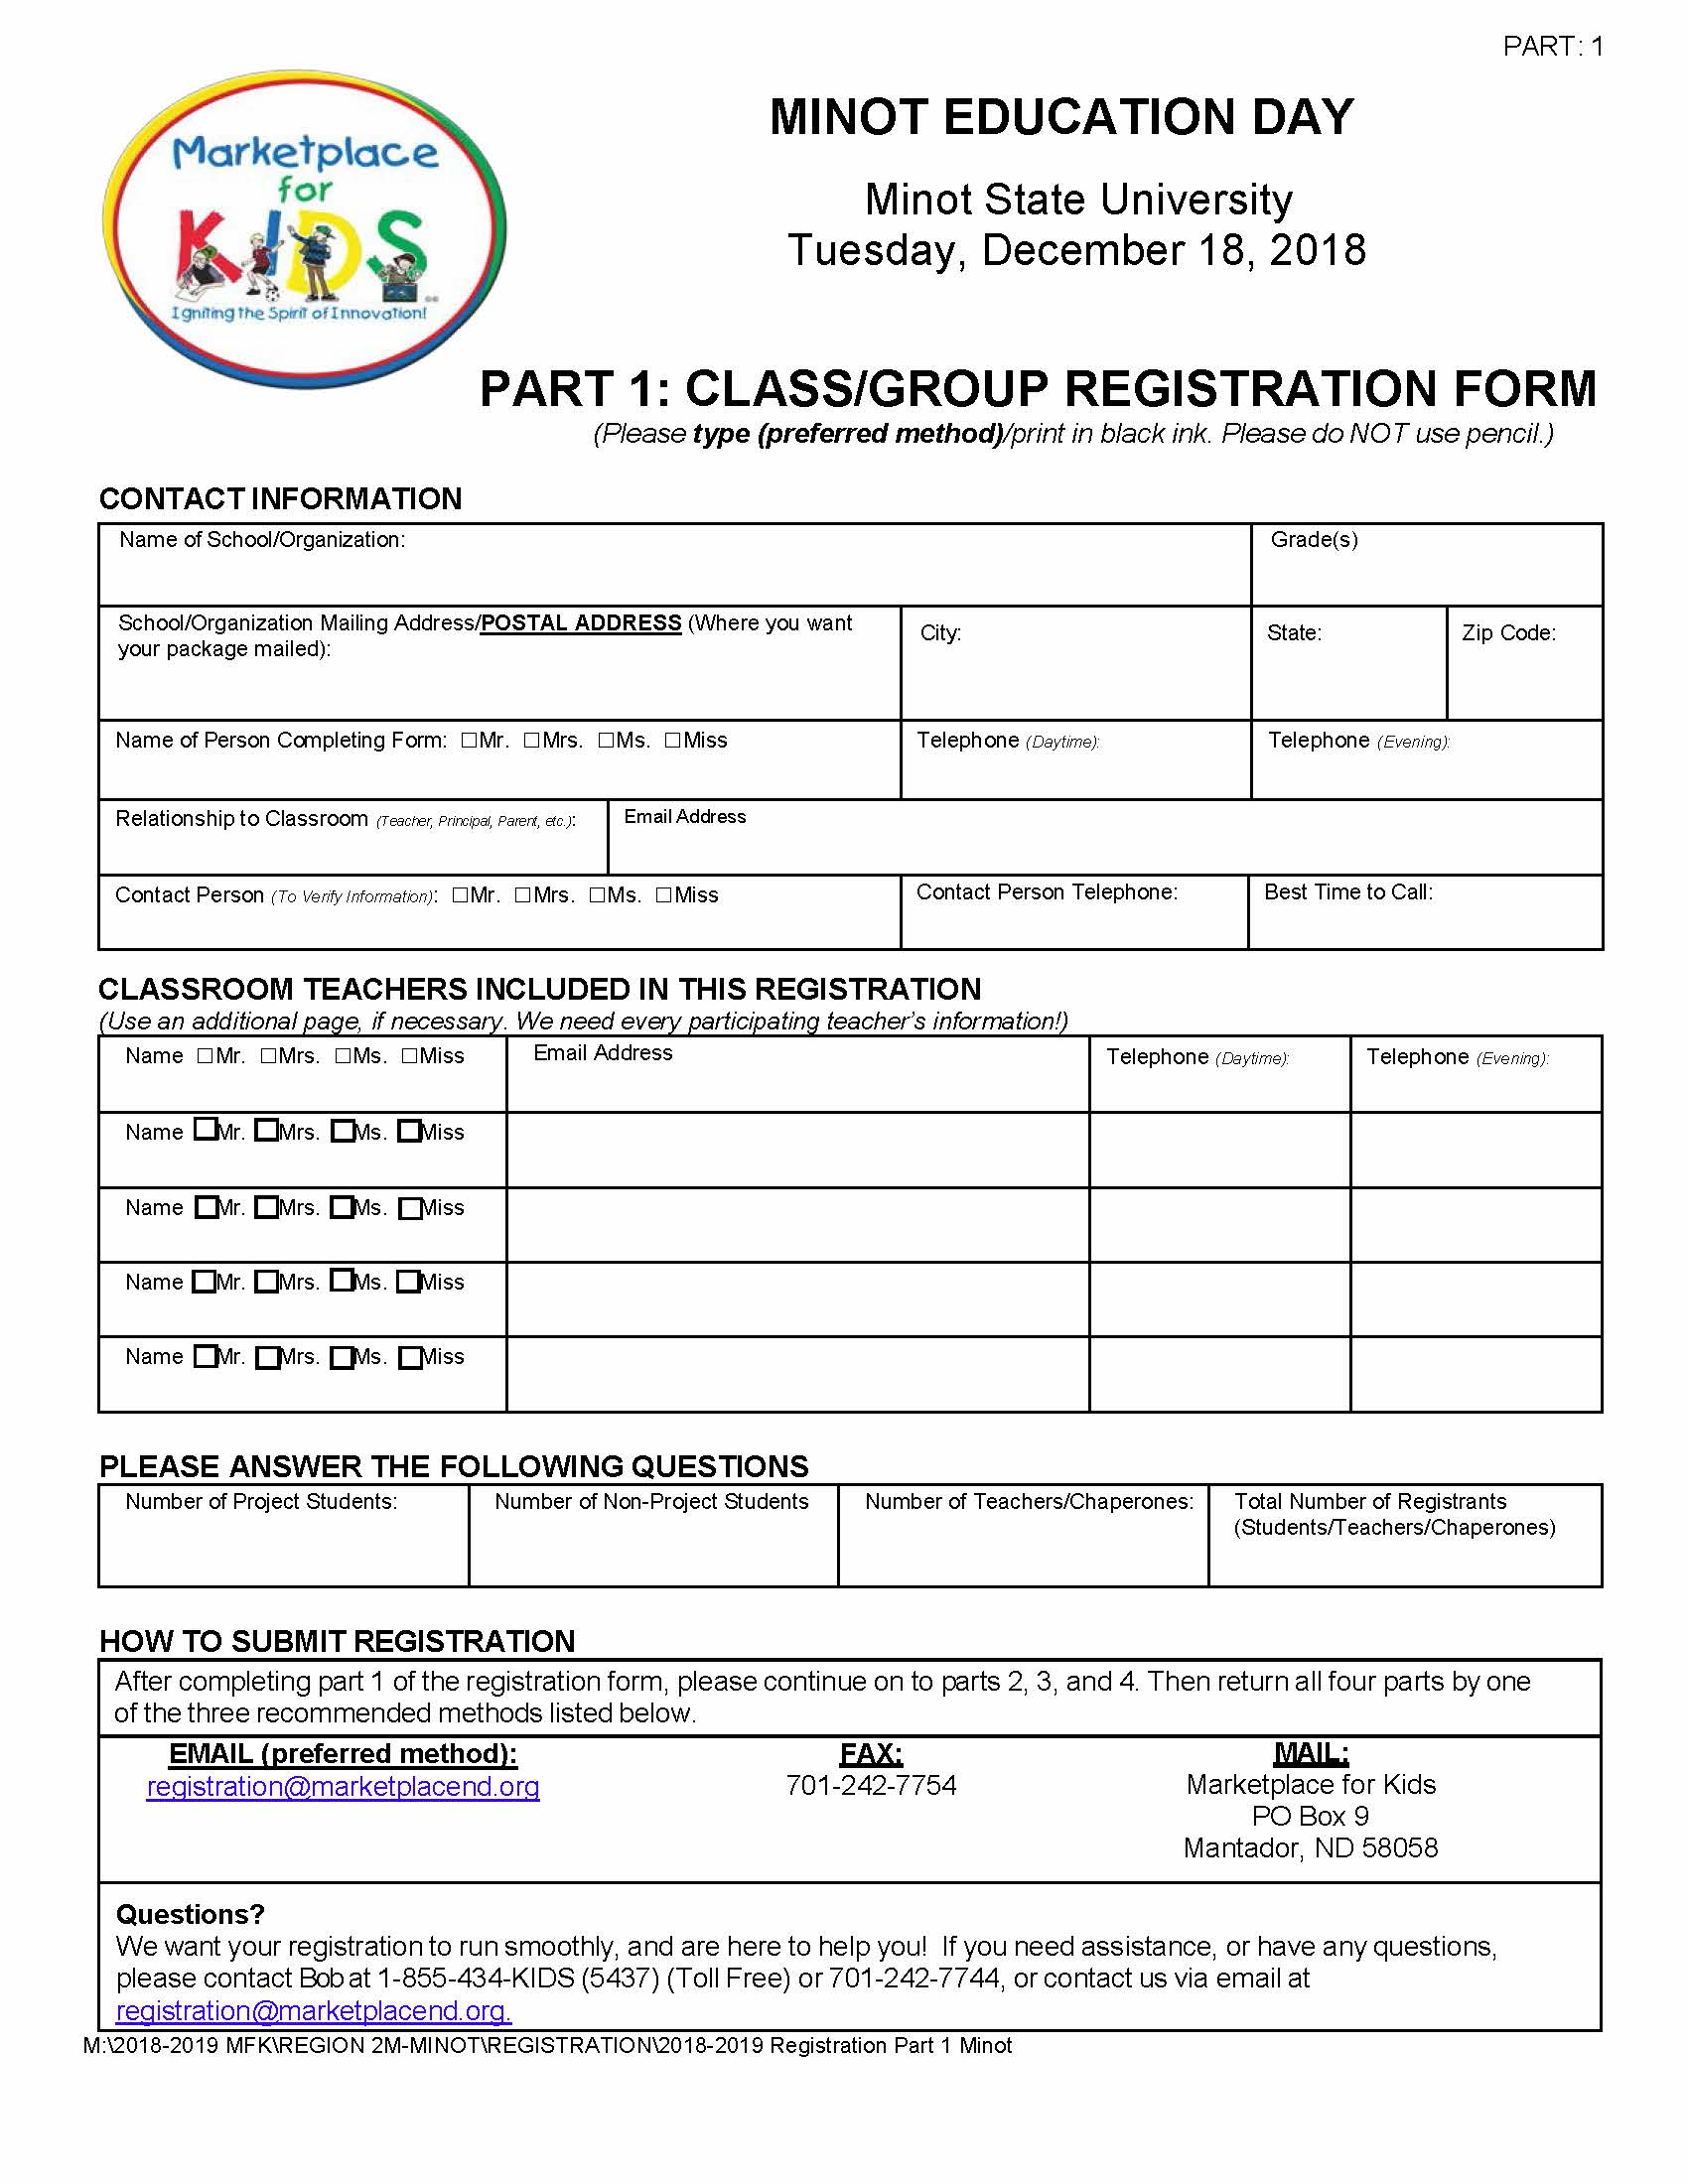 Registration Part 1